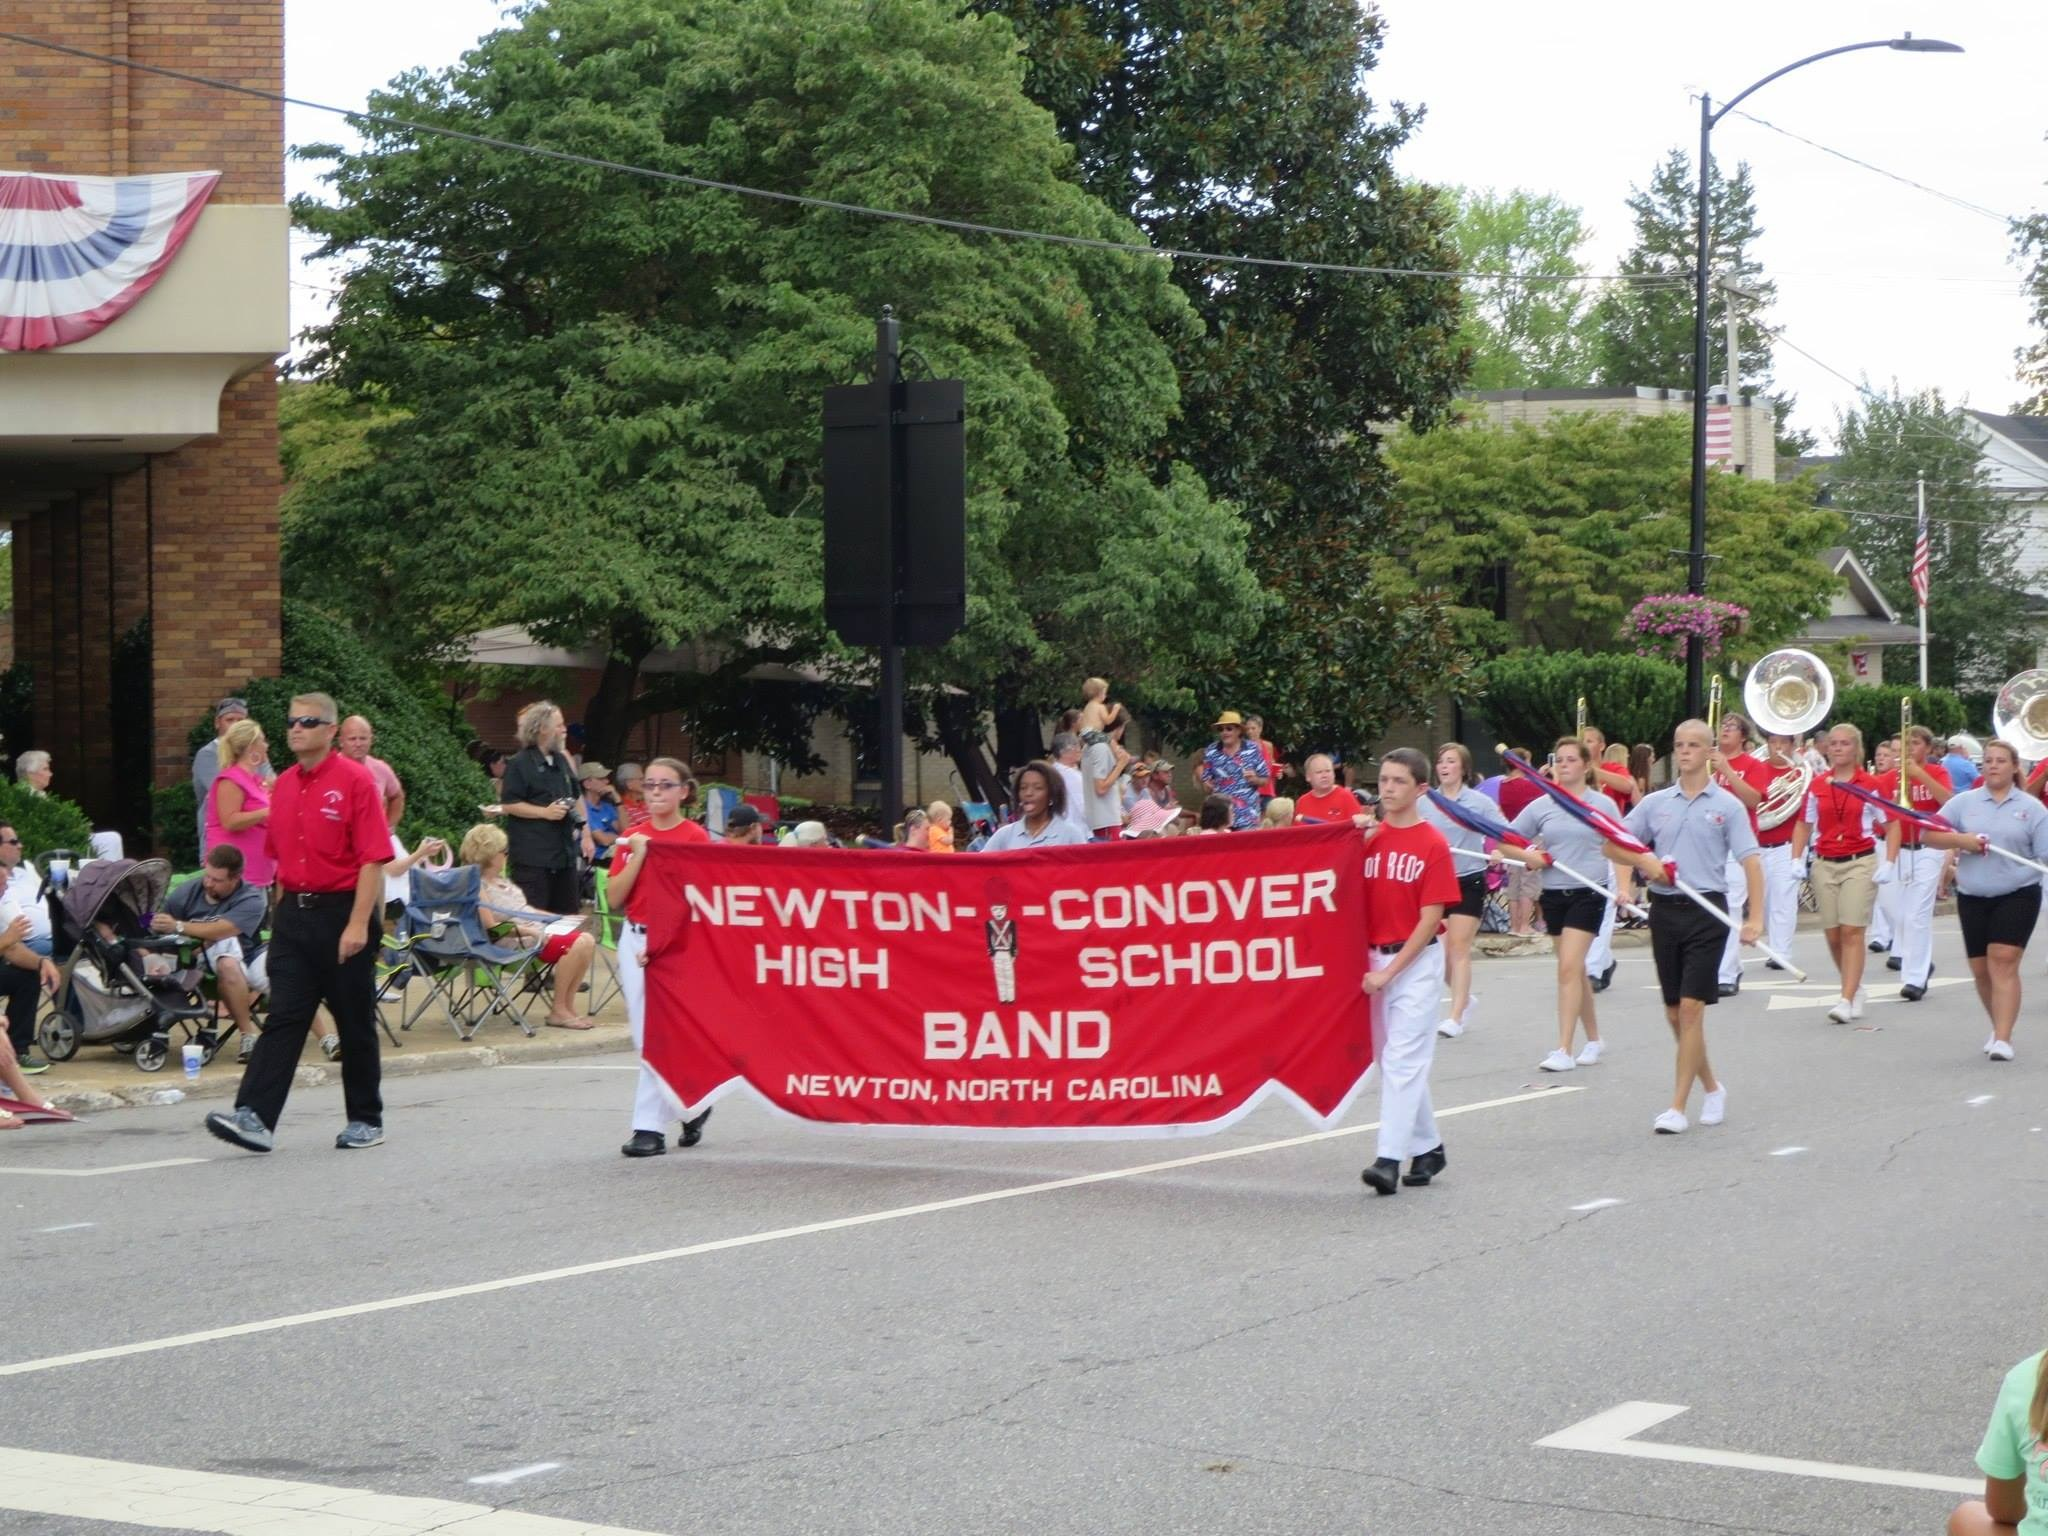 Band marching in the Old Soldiers Reunion Parade